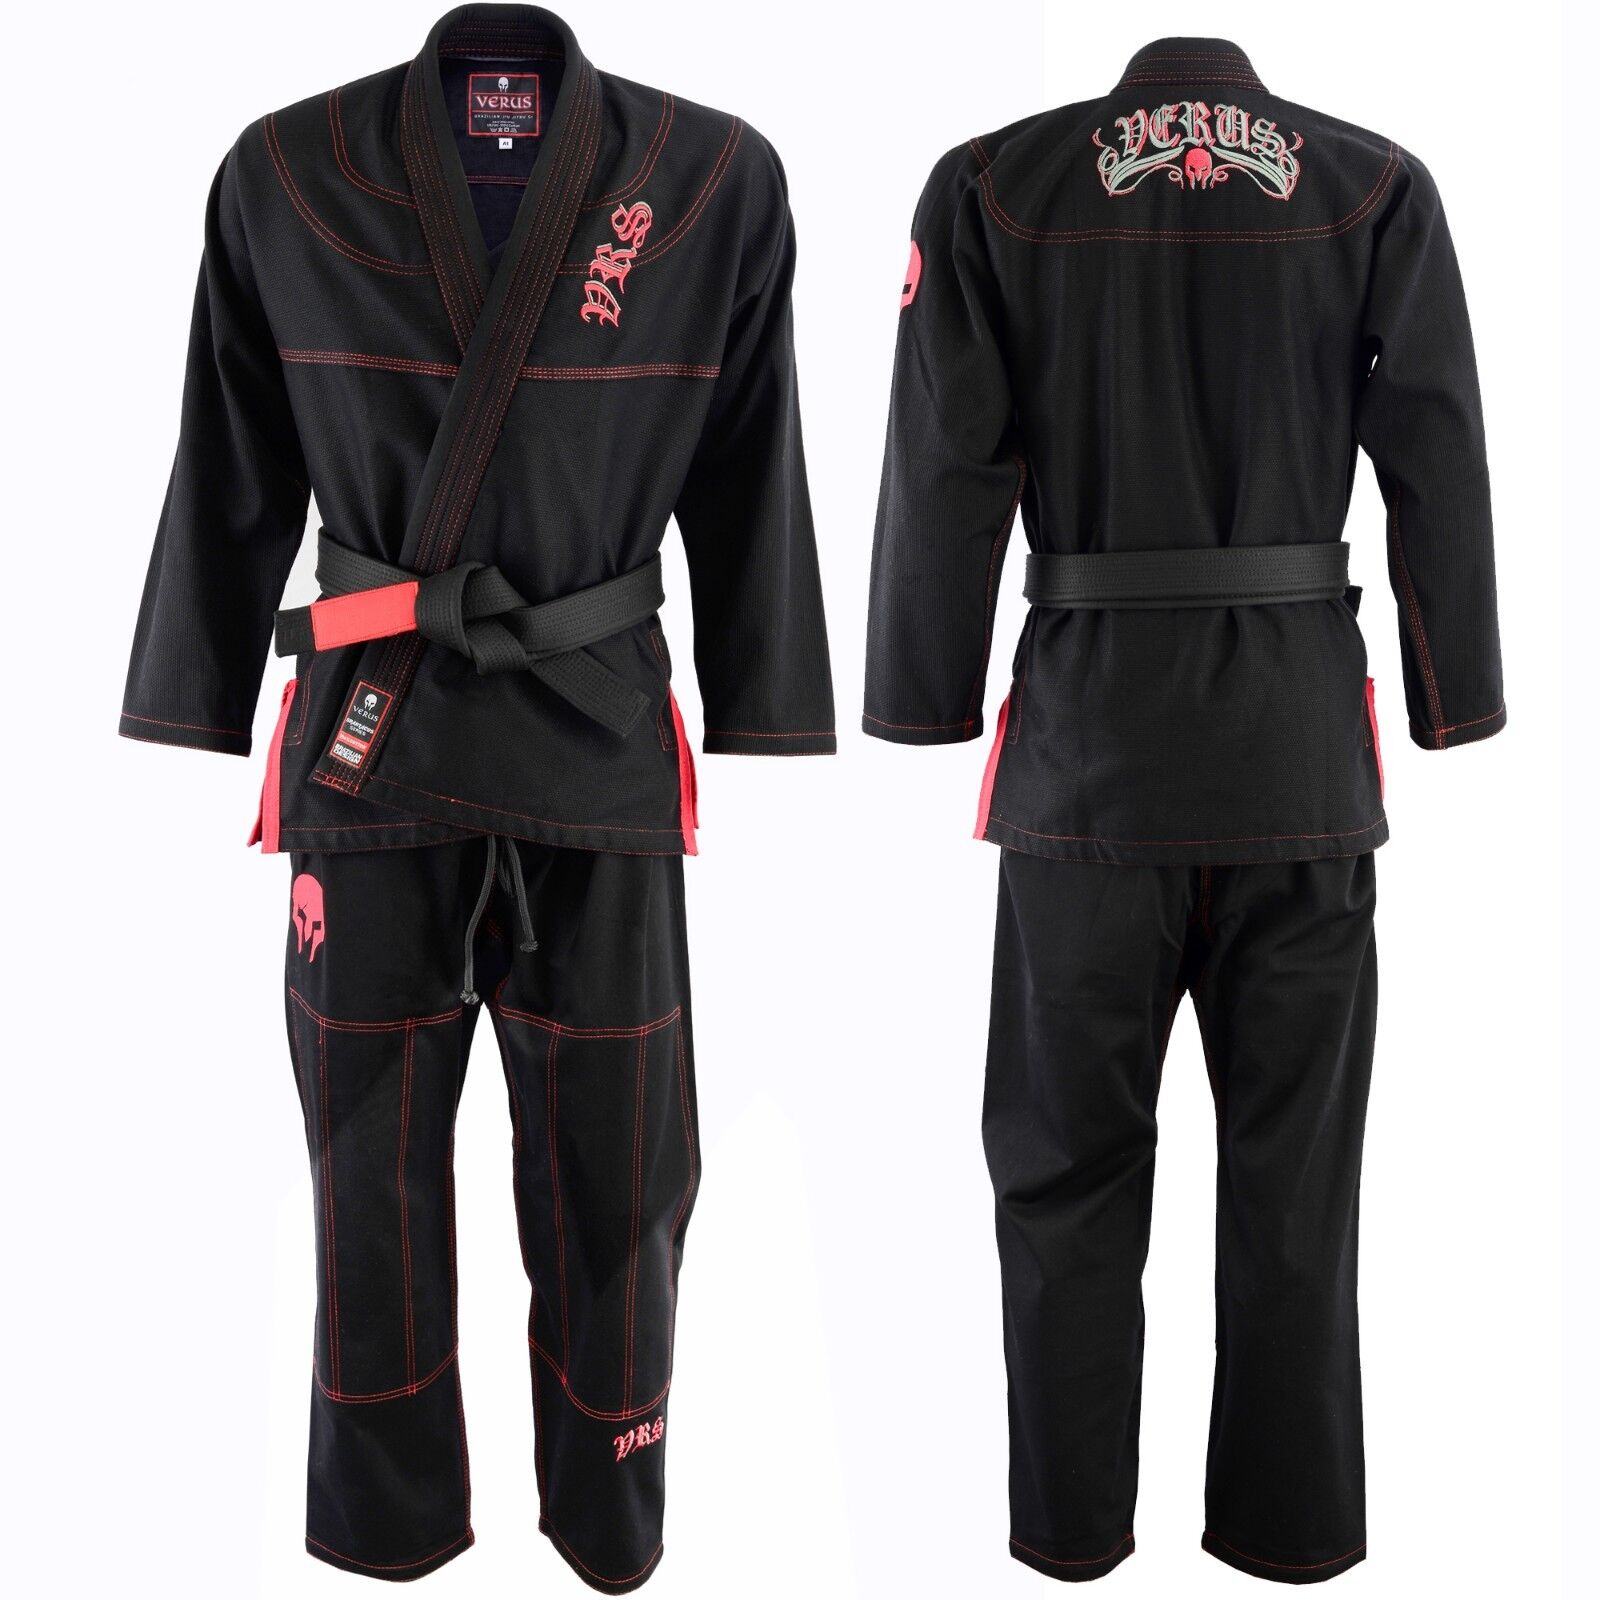 Jiu Jitsu Gi MMA A0  Brazilian Fight Uniform Spartacus Edition II BJJ Weave  for sale online